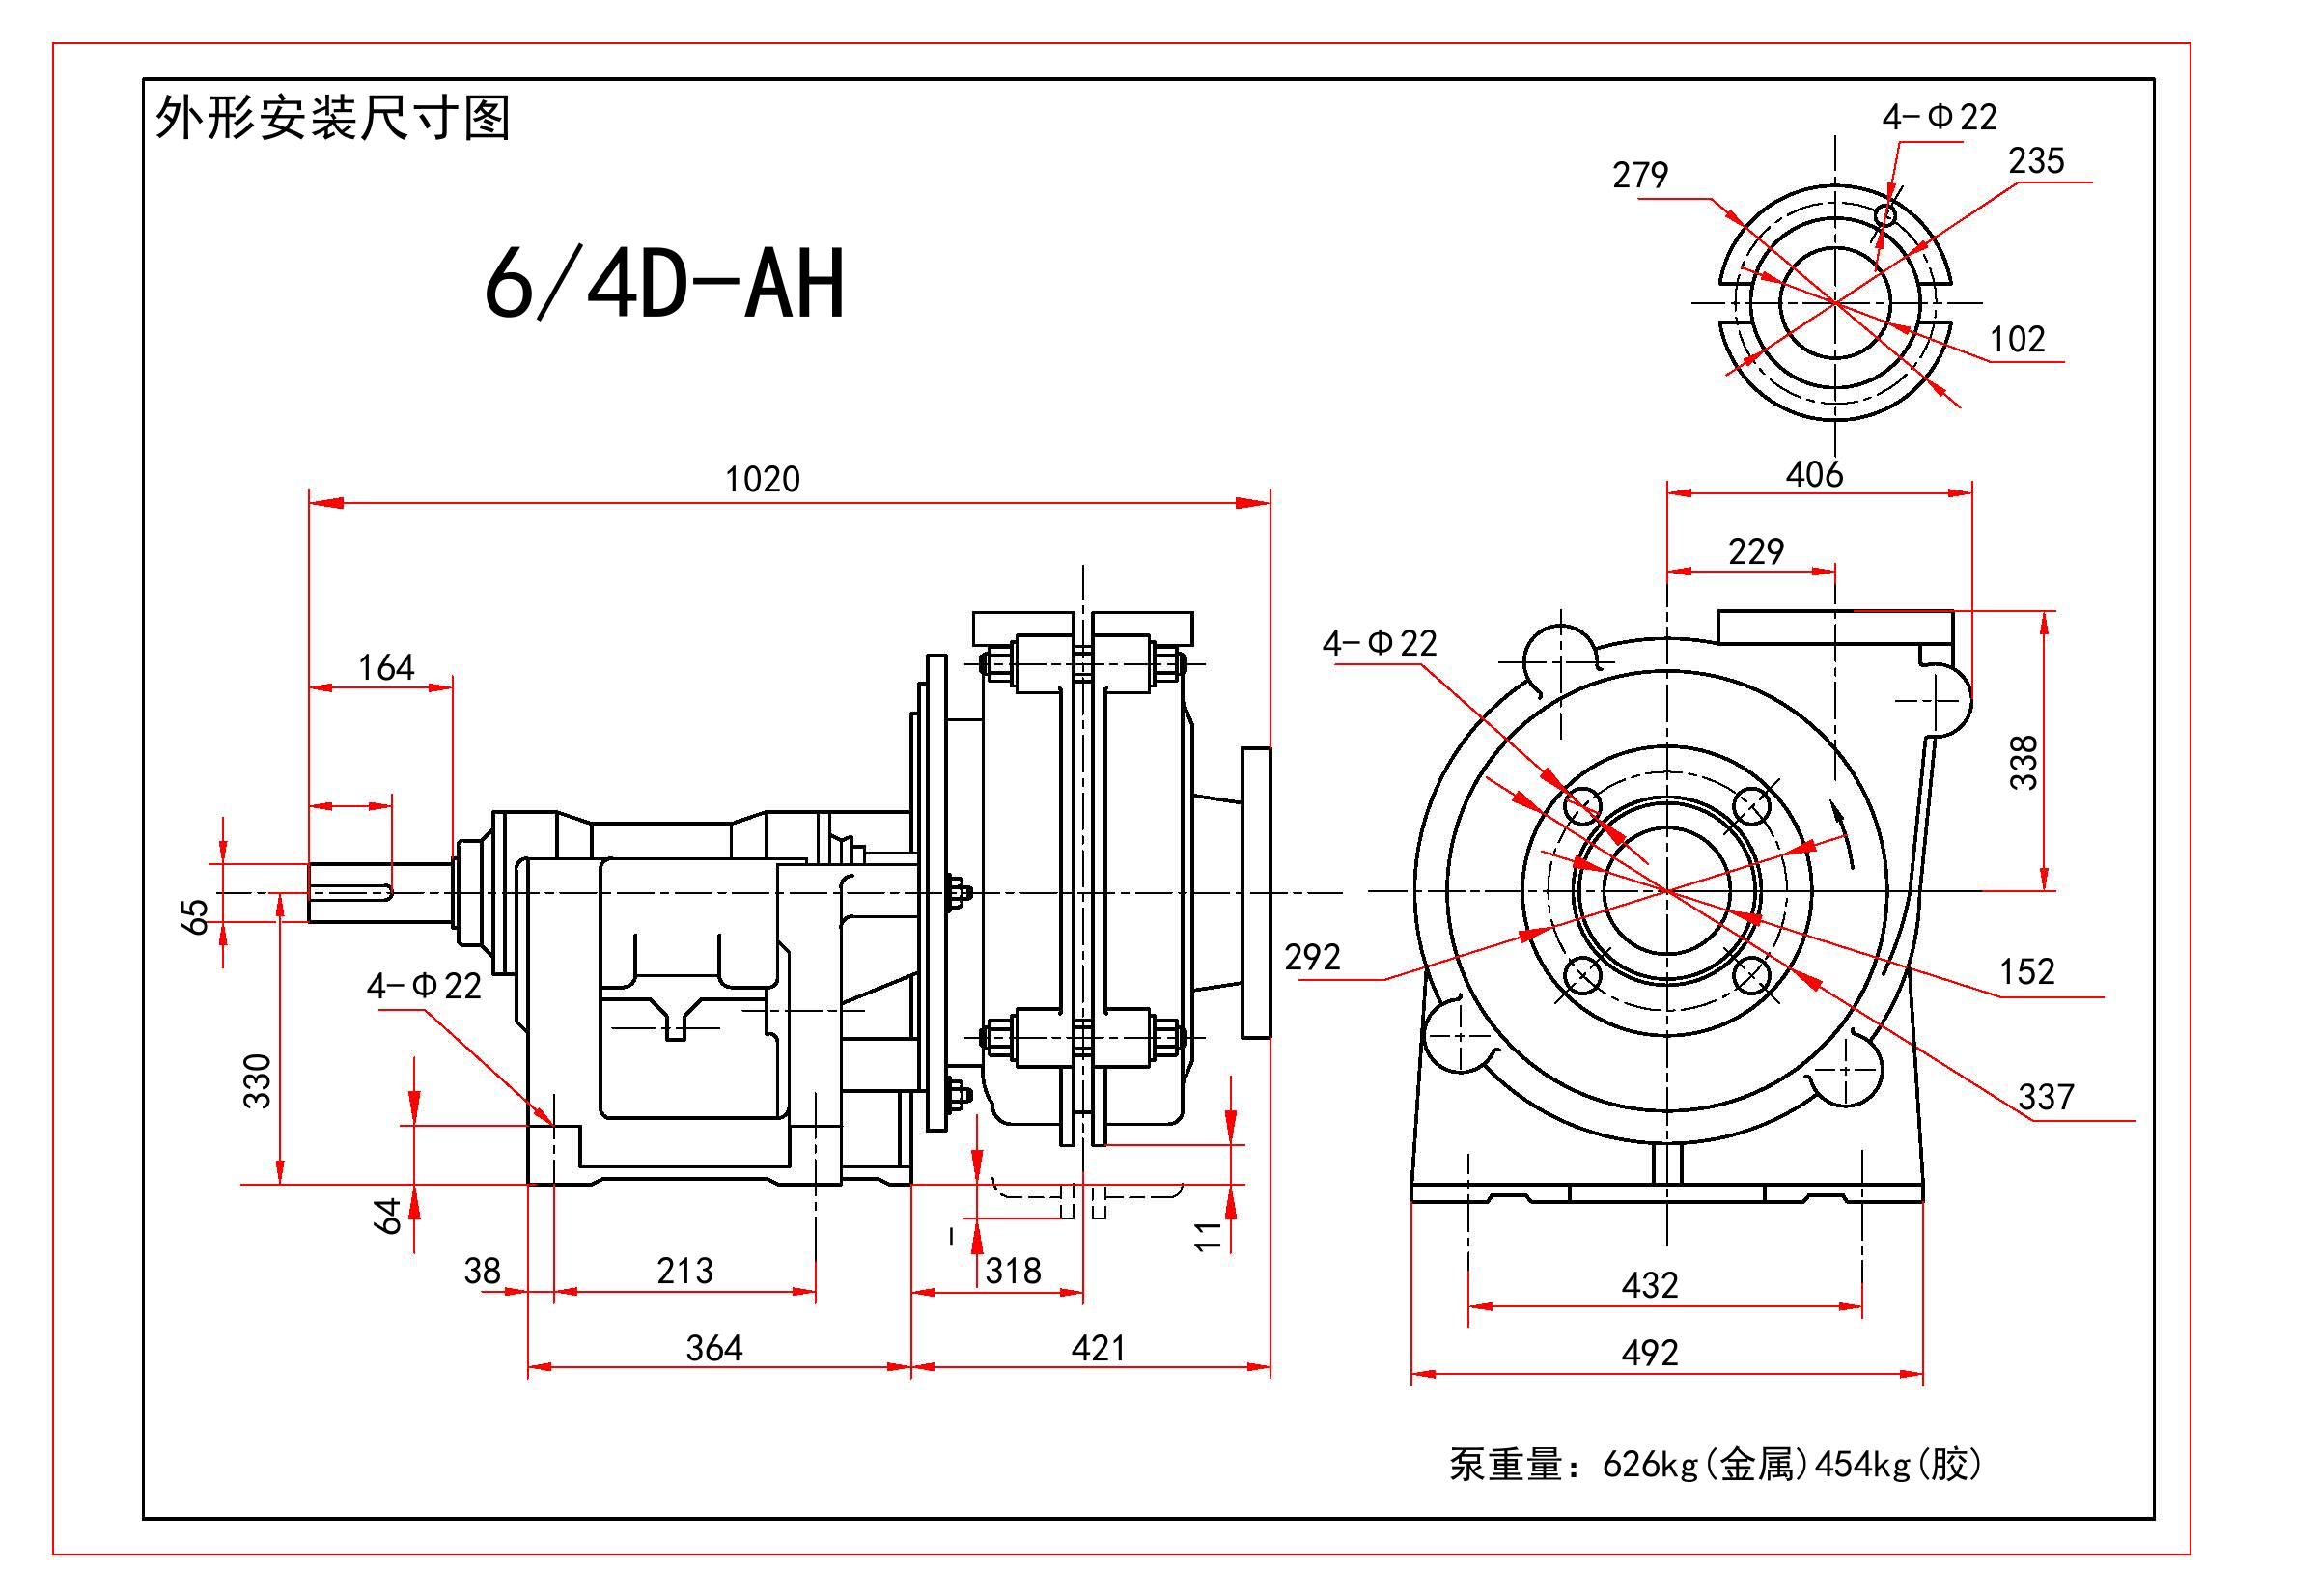 6/4D-AH slurry pump